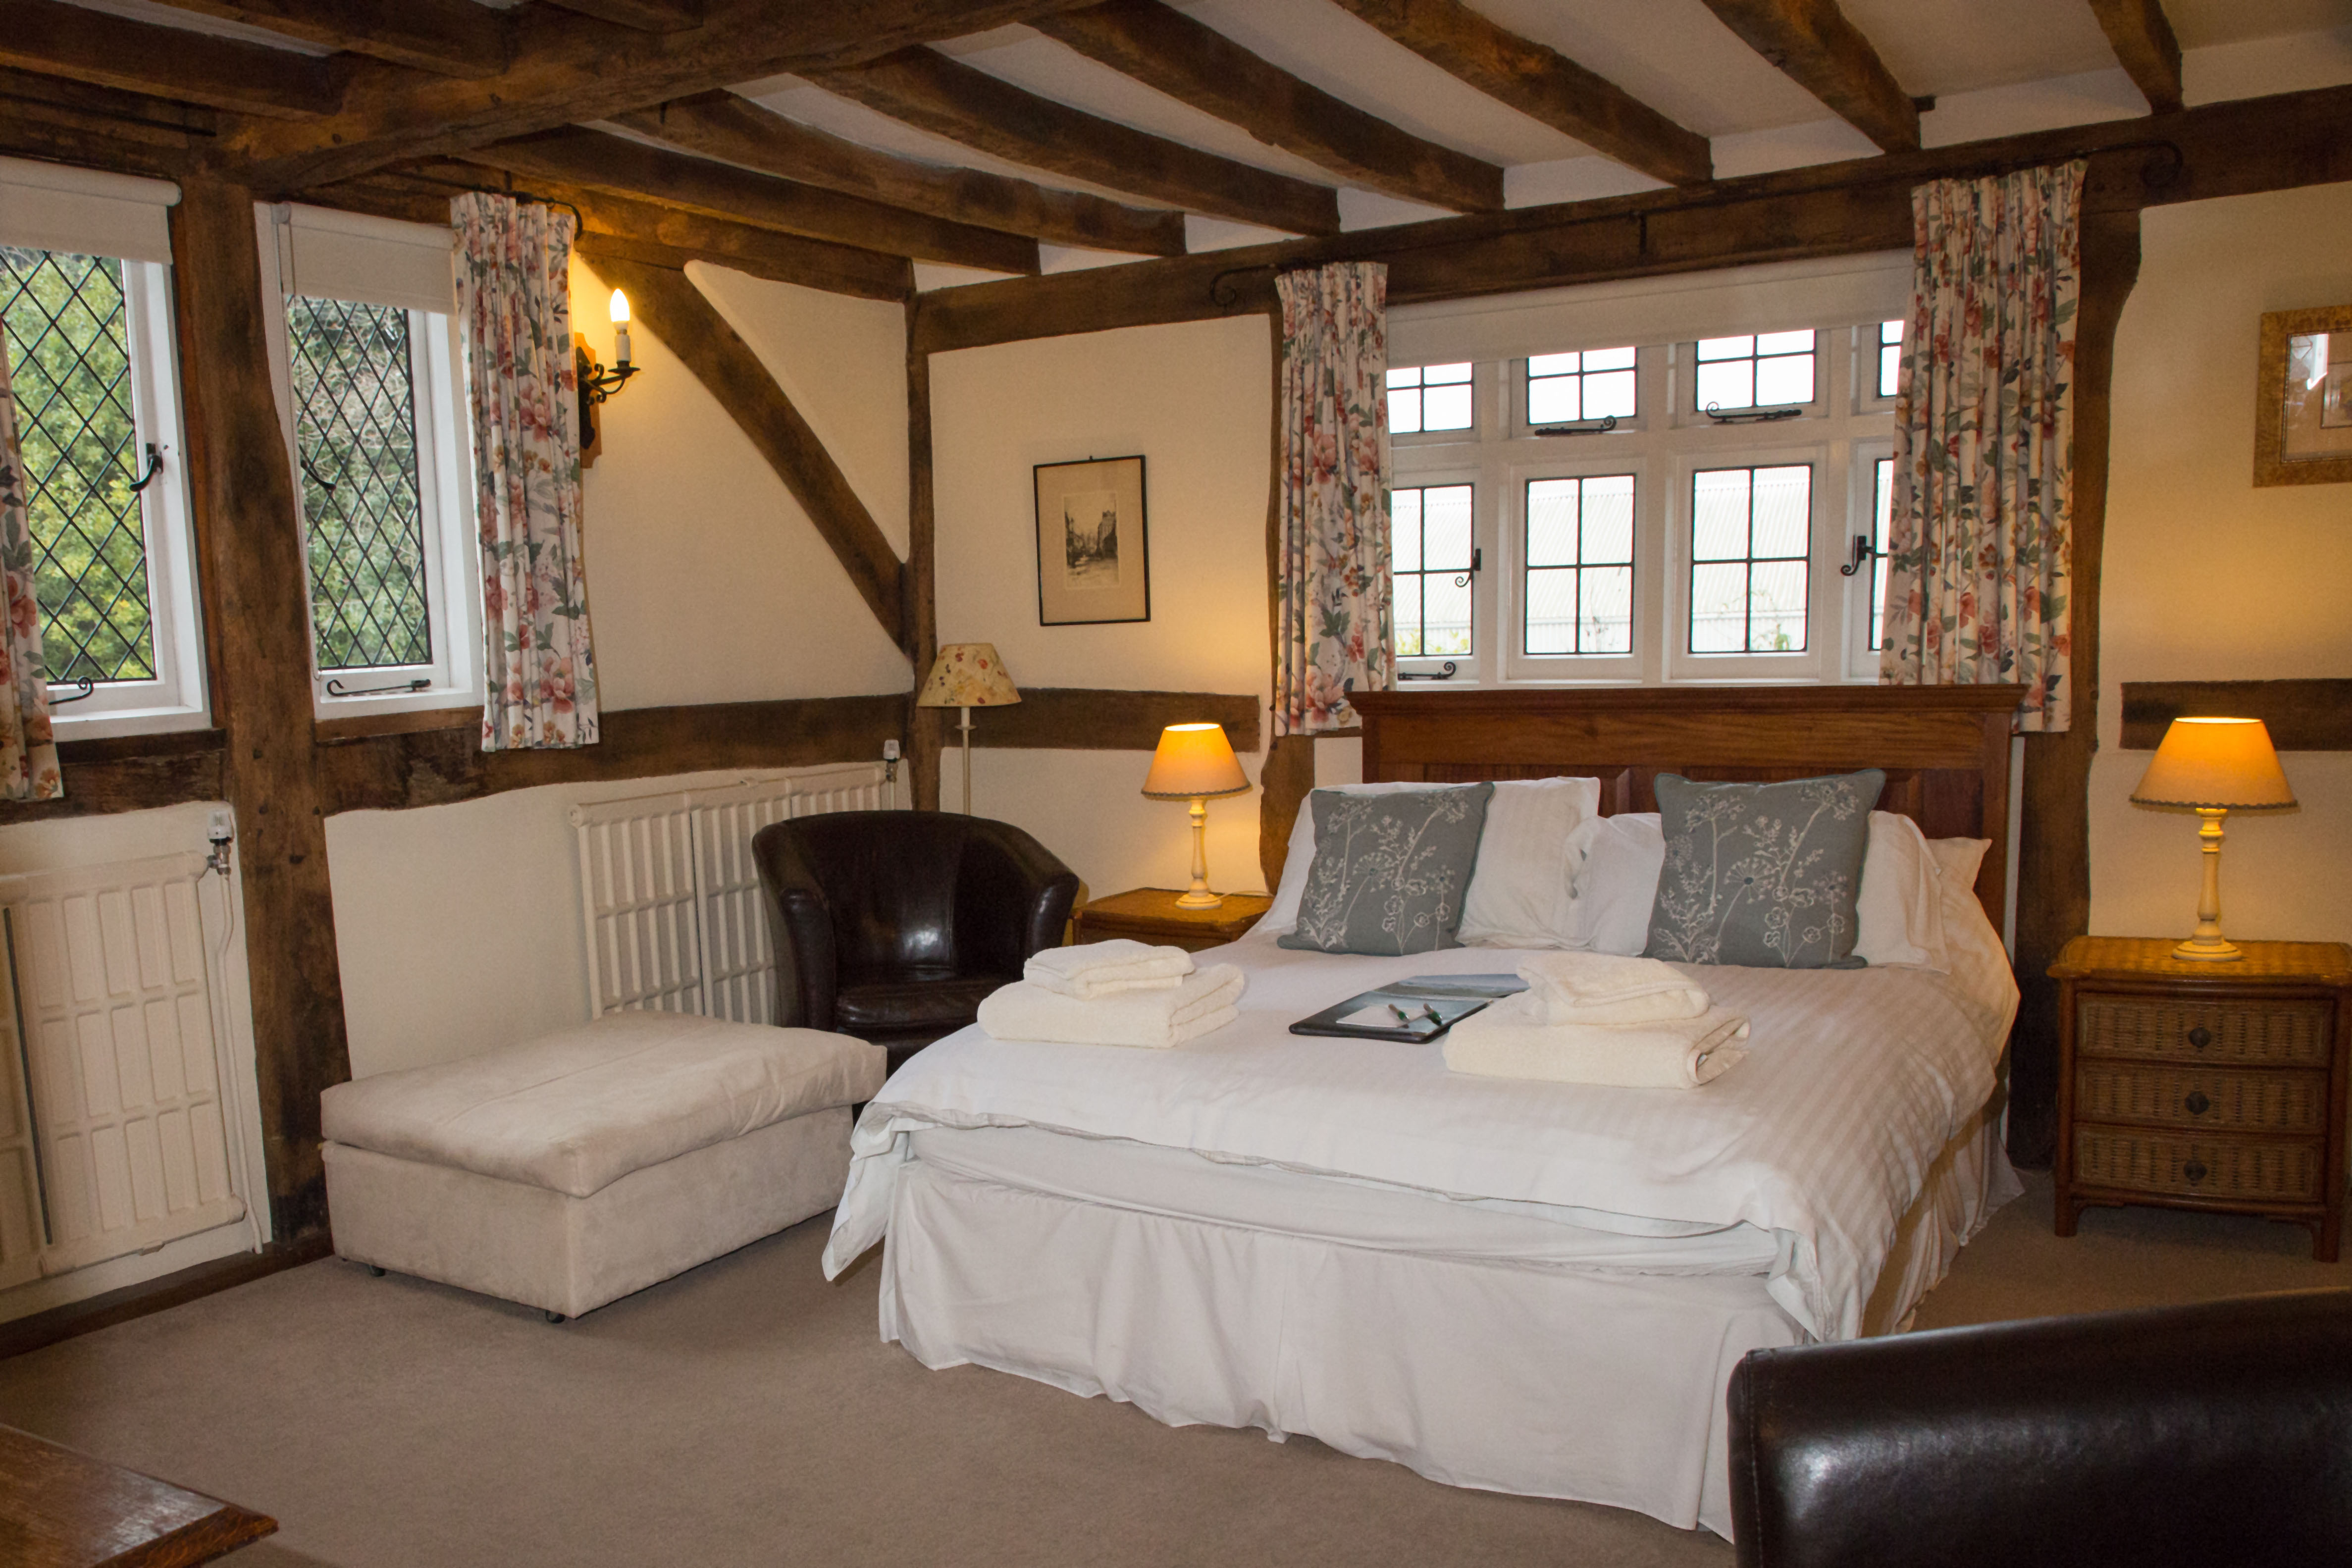 Bed and Breakfast in Windsor - The Old Farmhouse Windsor